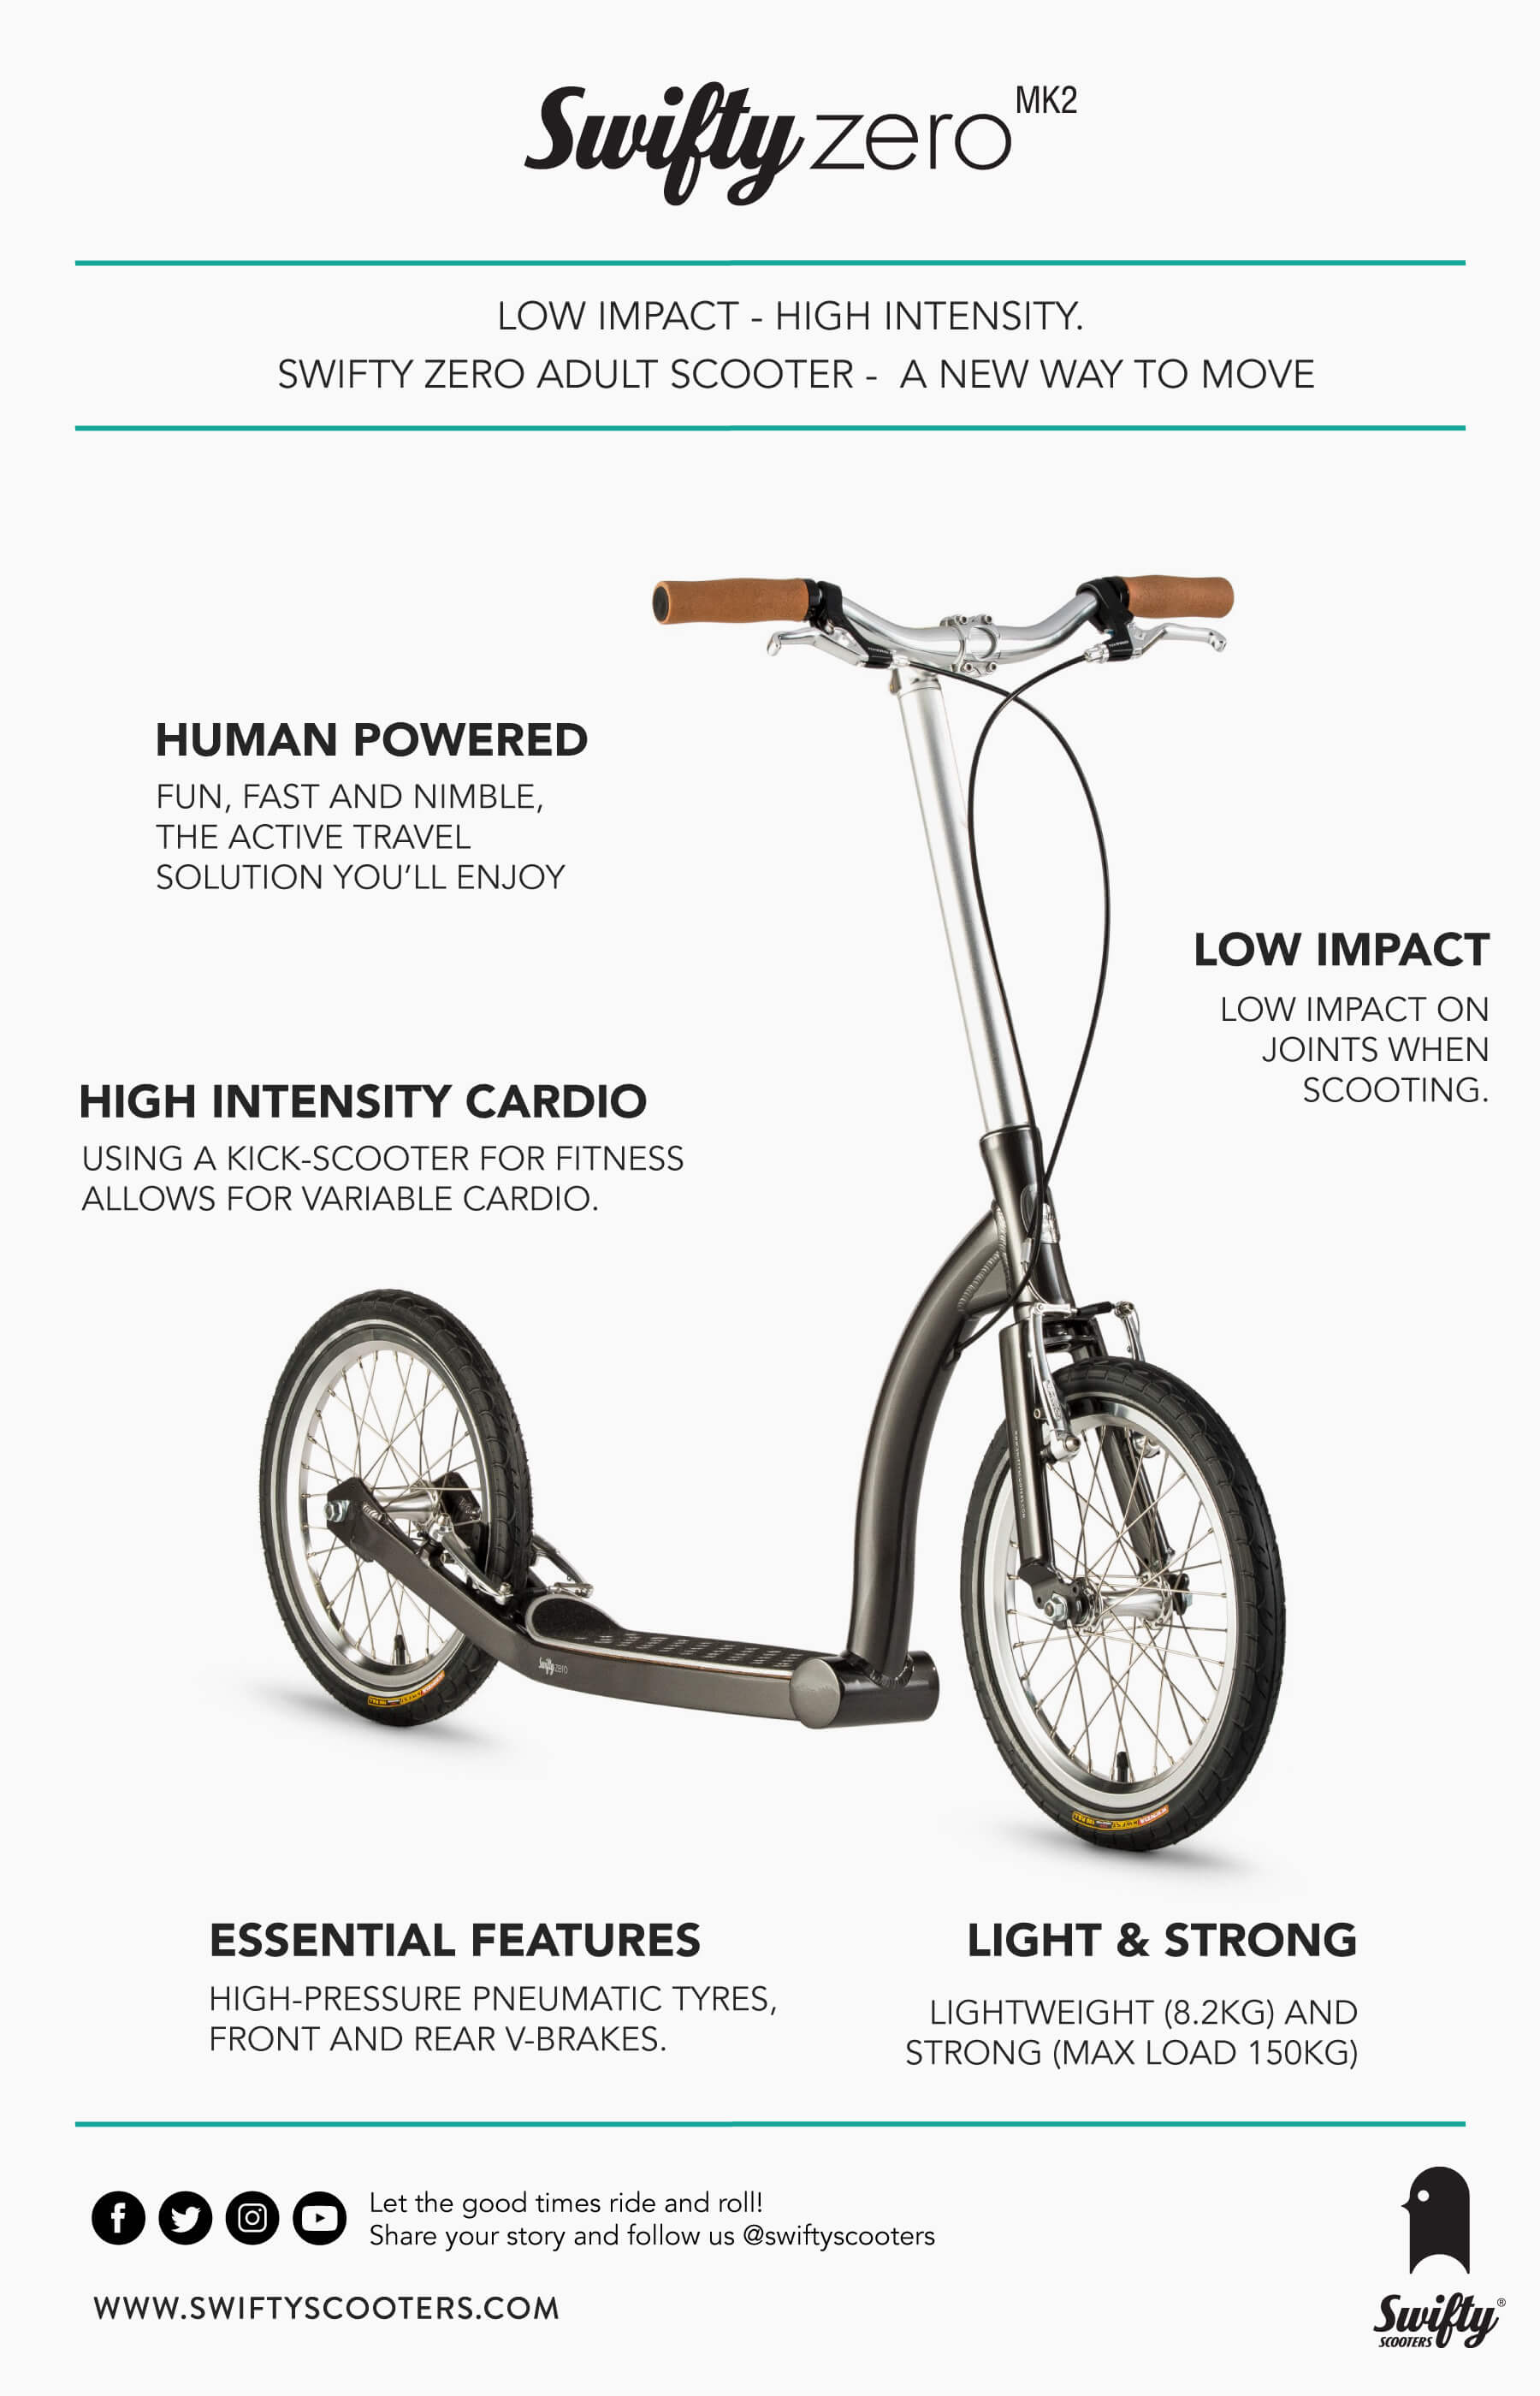 fitness scooter, adult scooter, kick scooter, exercise scooter